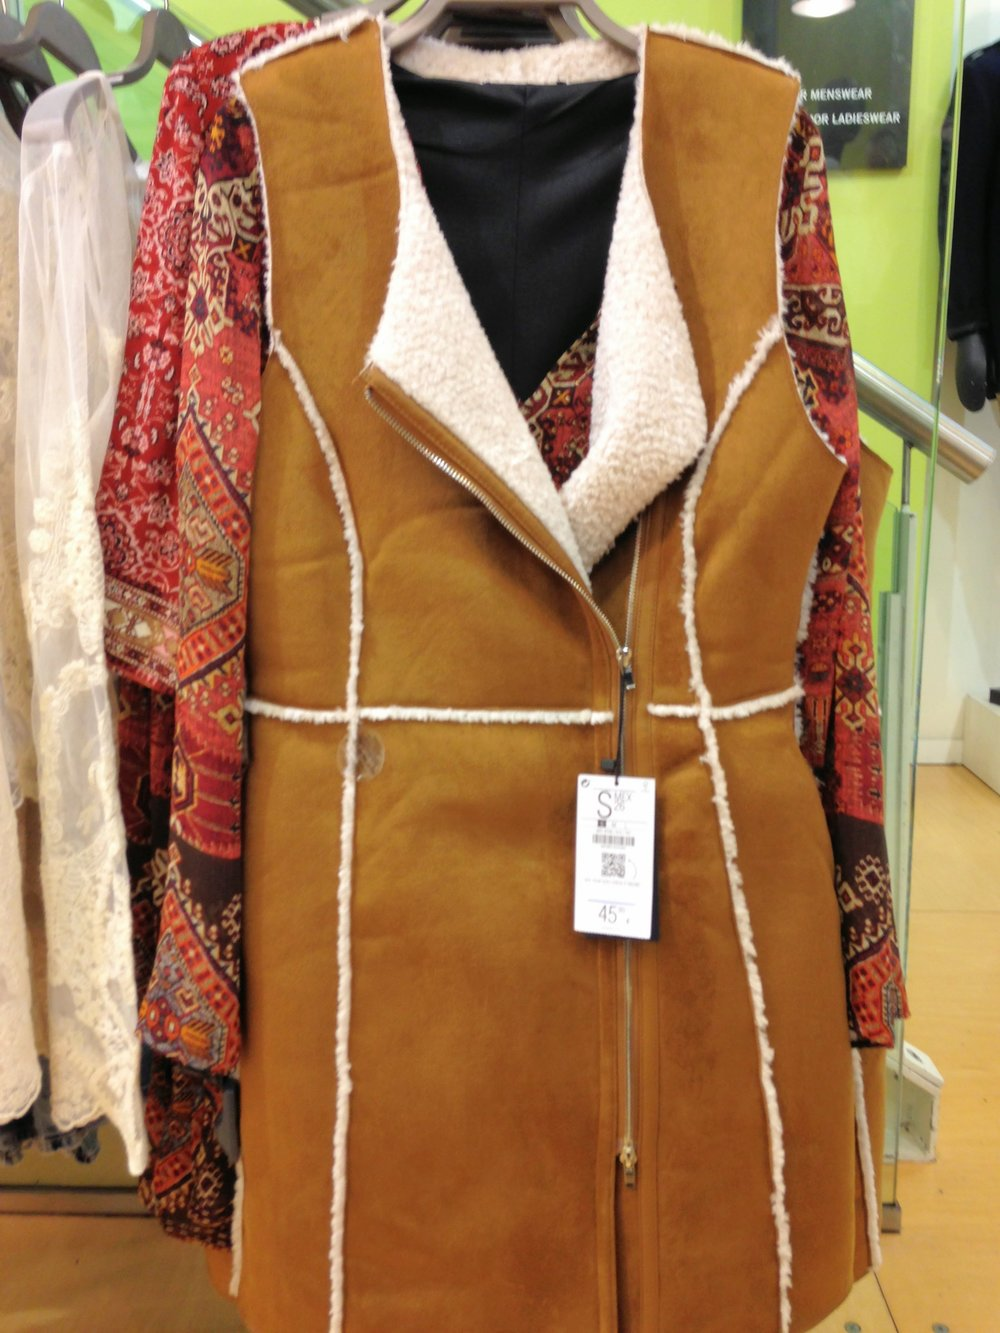 Bershka shirling gilet